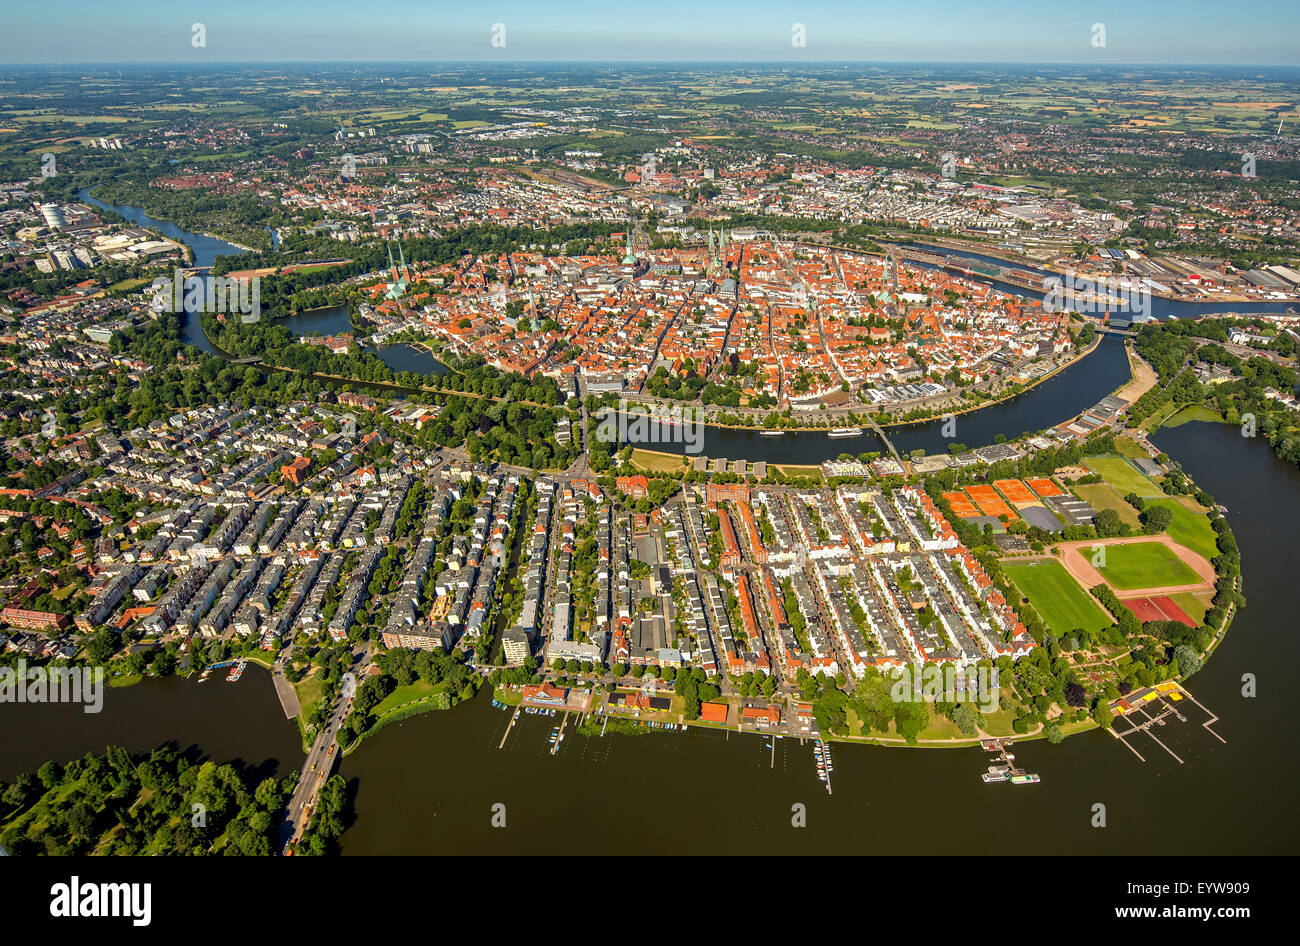 Historic centre of Lübeck with Trave and Obertrave, Bay of Lübeck, Lübeck, Schleswig-Holstein, Germany - Stock Image